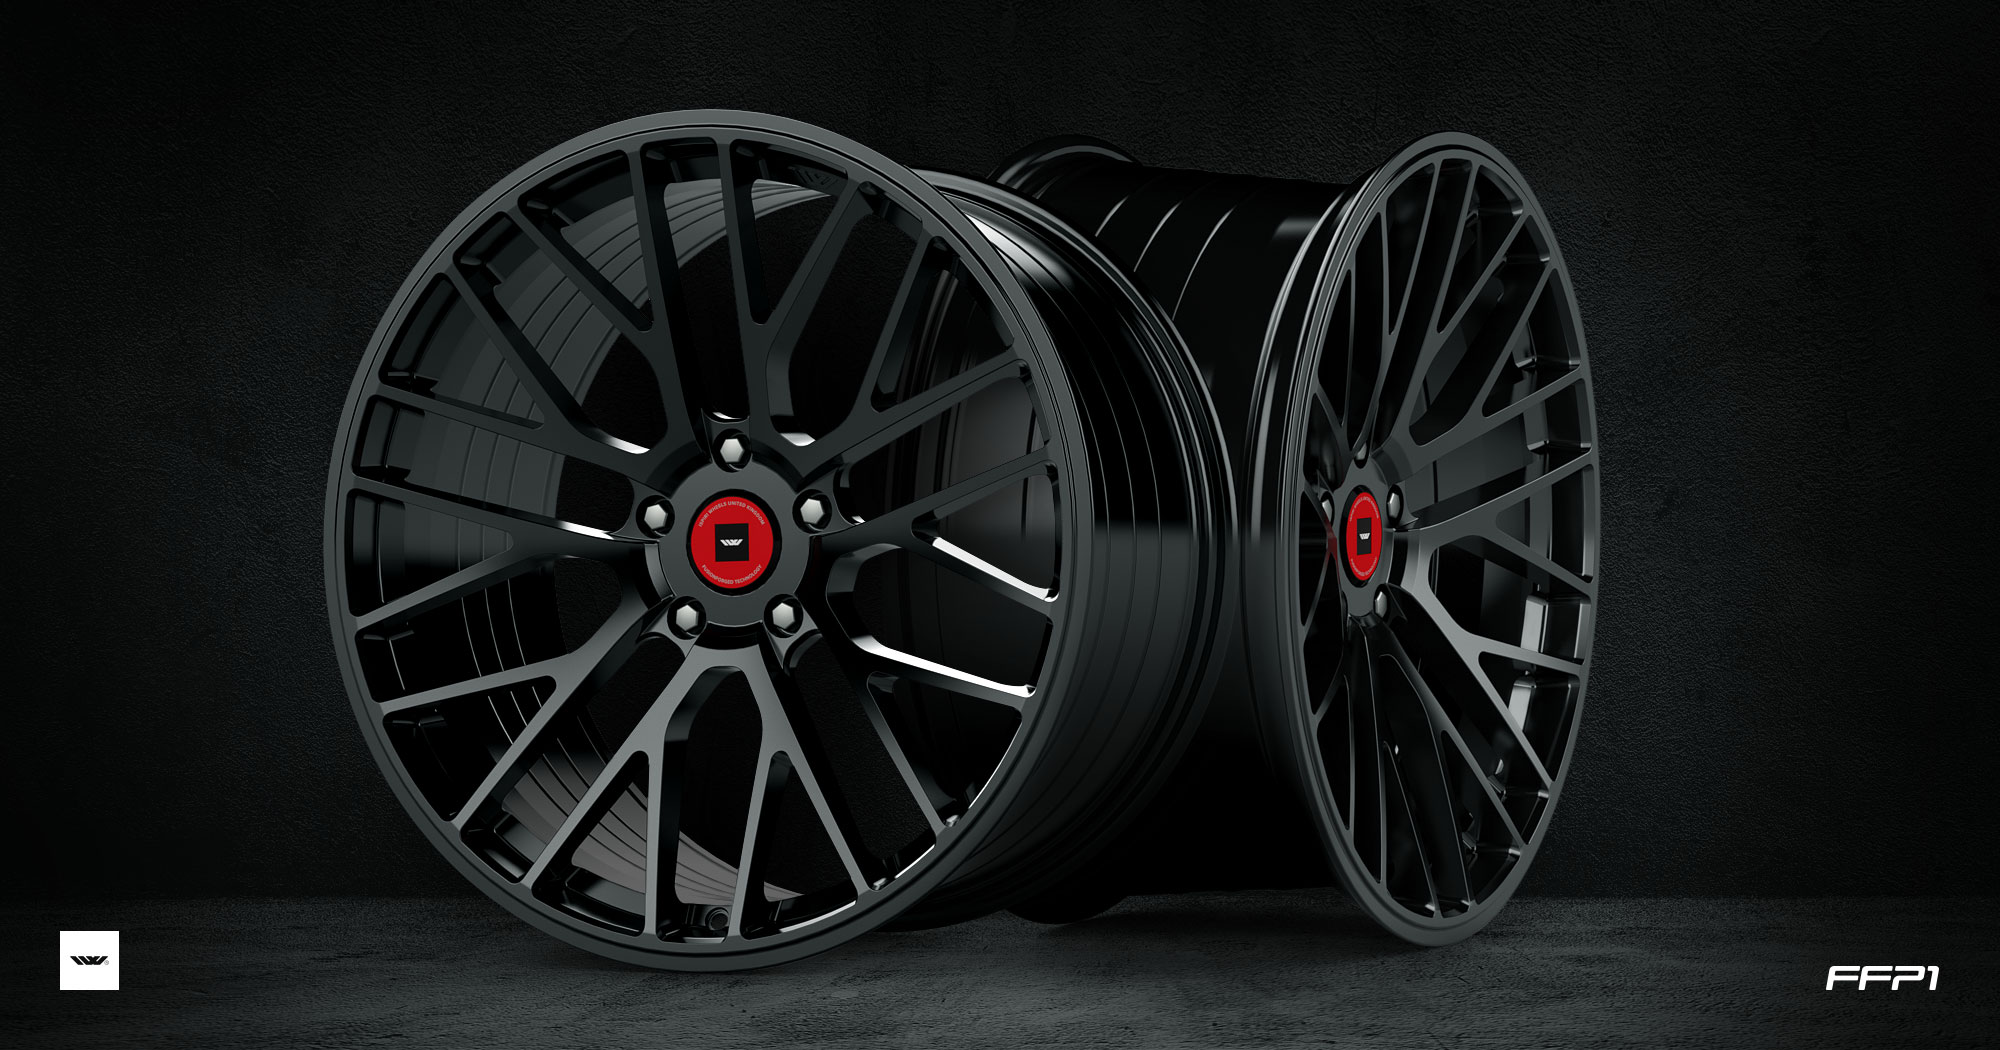 "NEW 19"" ISPIRI FFP1 ALLOY WHEELS IN CORSA BLACK, DEEPER CONCAVE 9.5"" REARS"